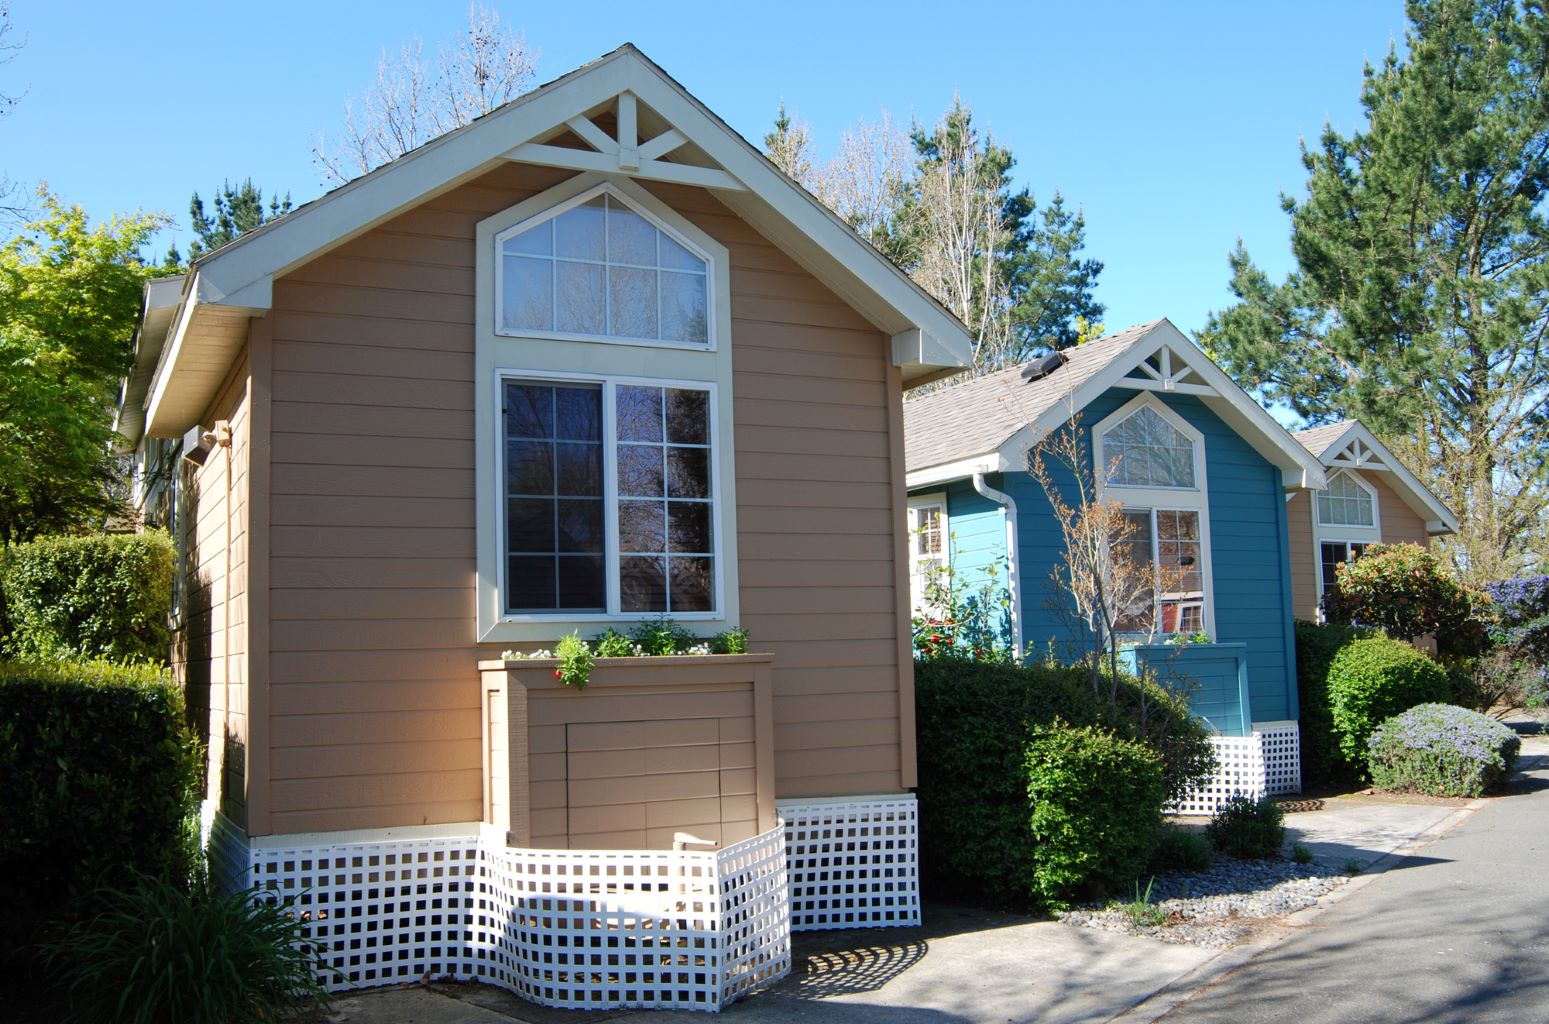 2 tiny houses next to each other in a tiny house community